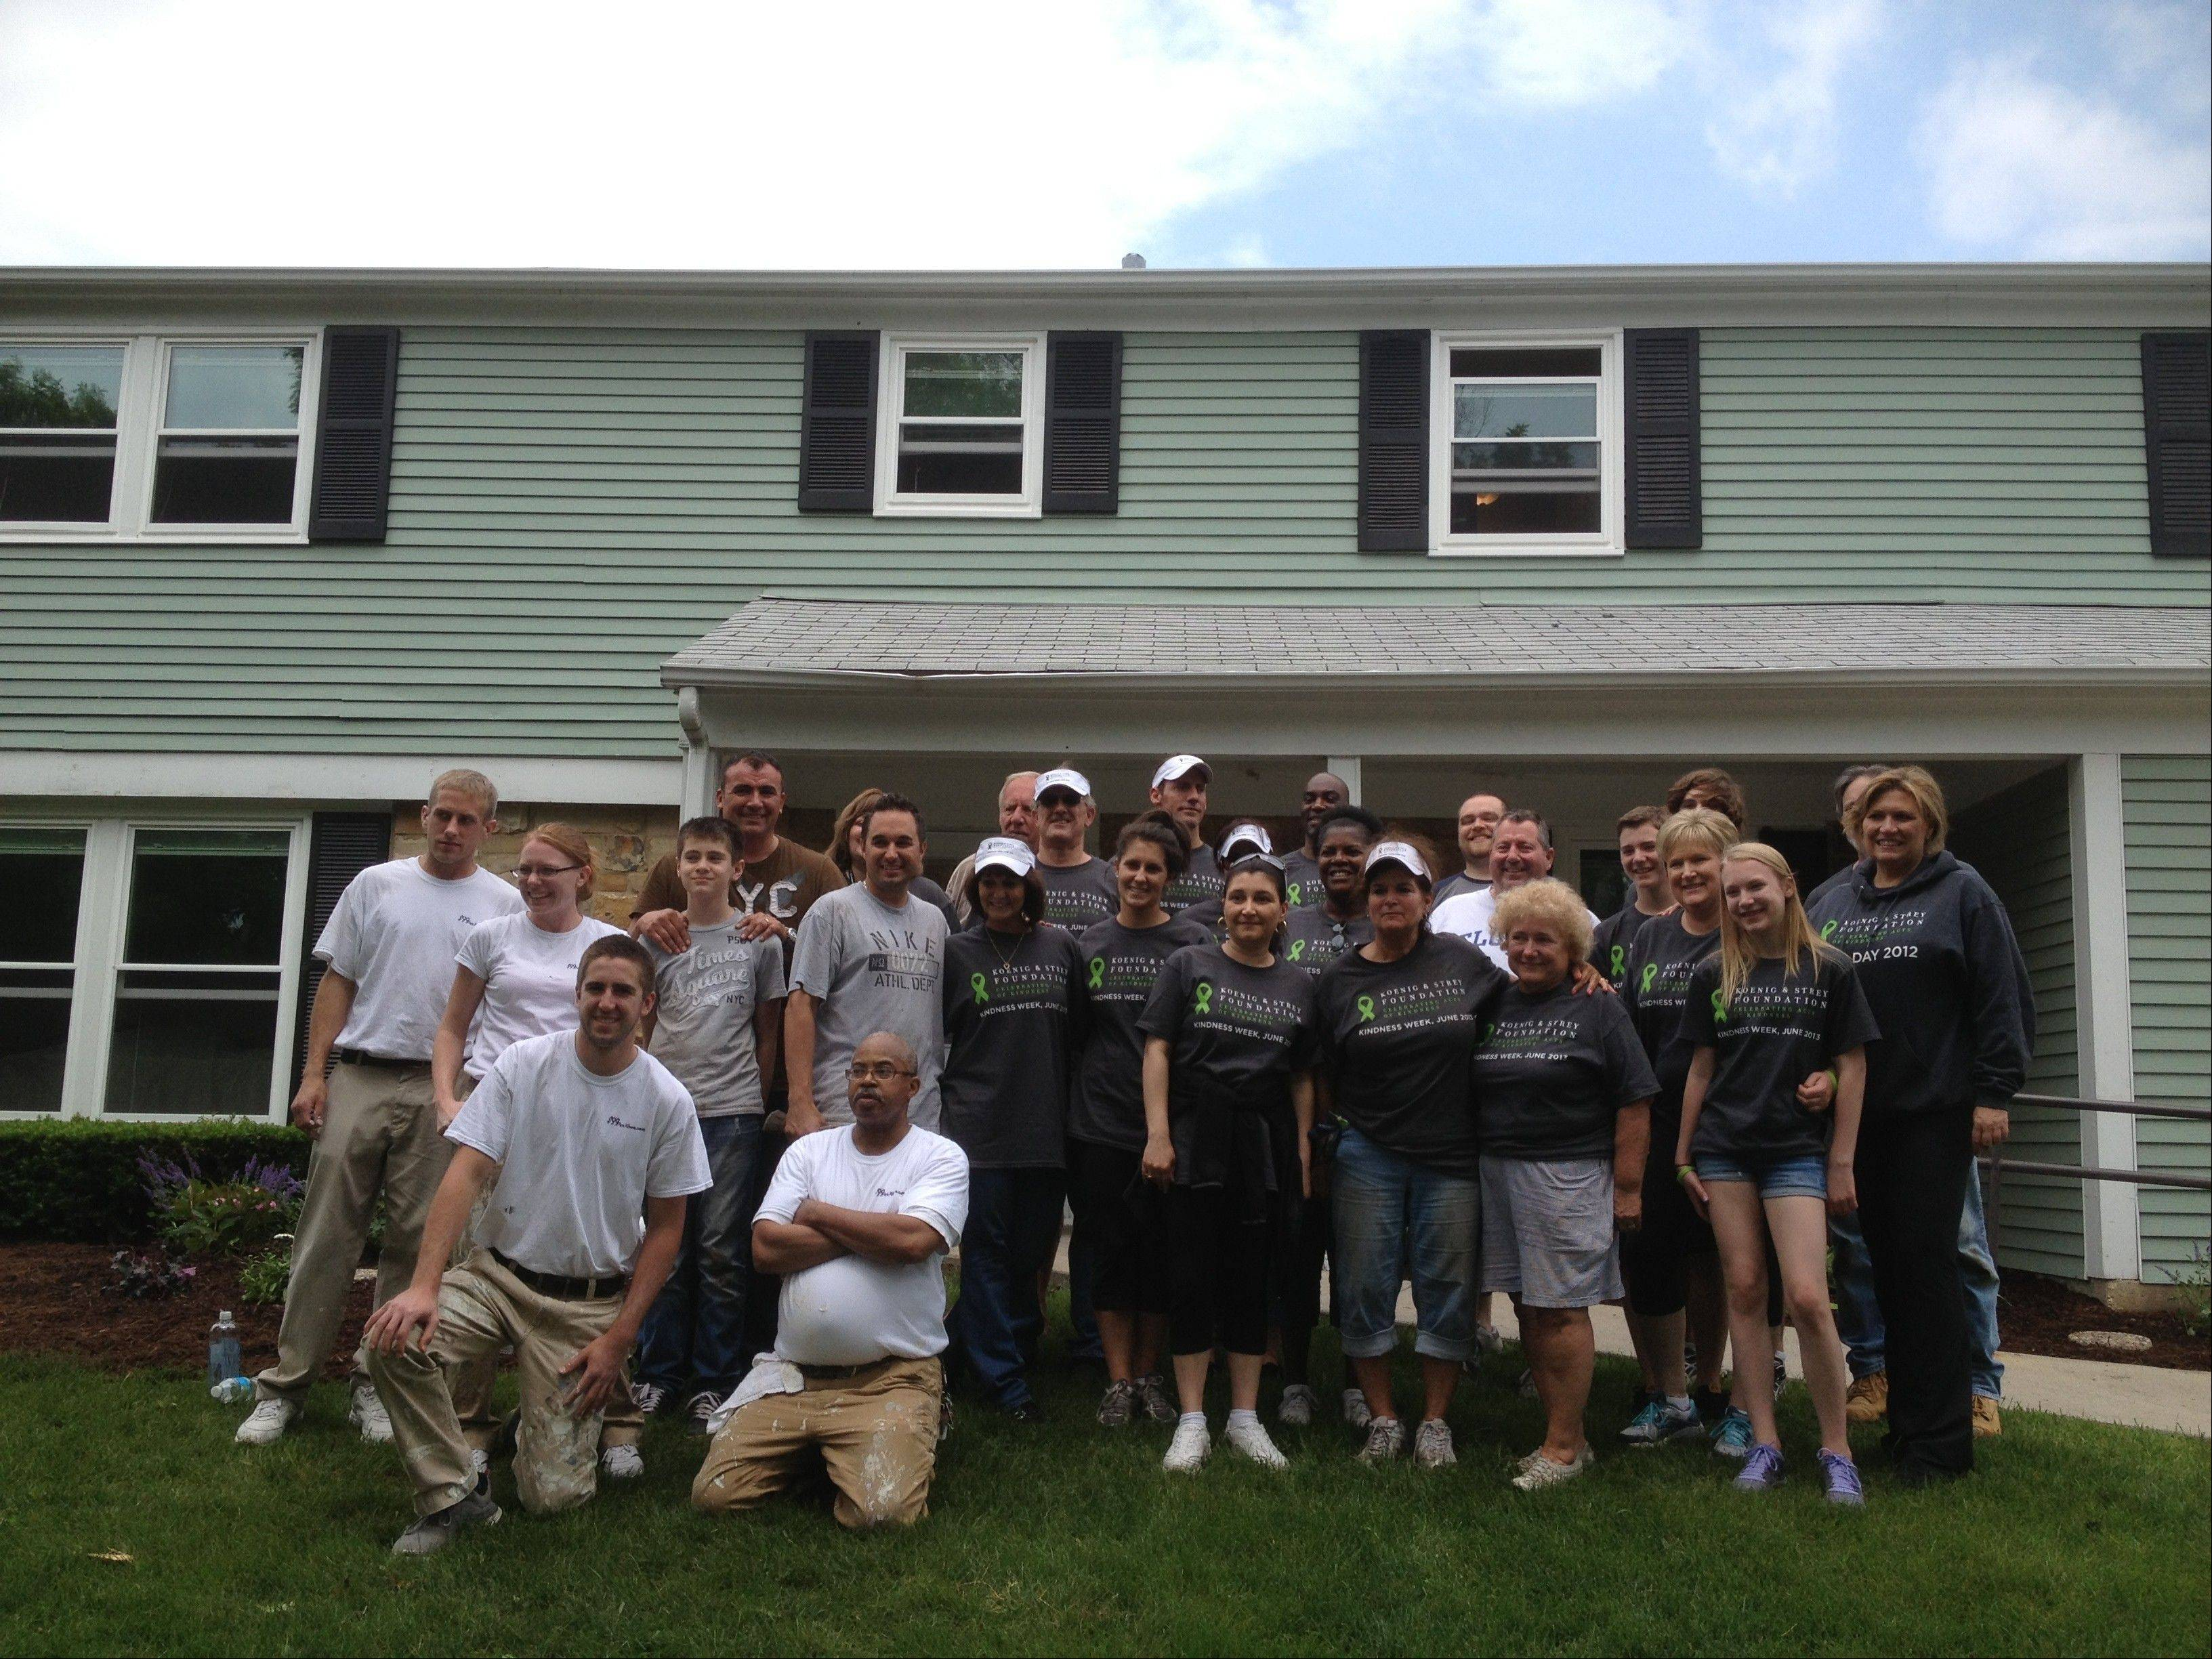 About 30 volunteers helped renovate two Schaumburg group homes Monday operated by Palatine-based Little City. The effort was part of the real estate firm Koenig & Strey's first Kindness Week.